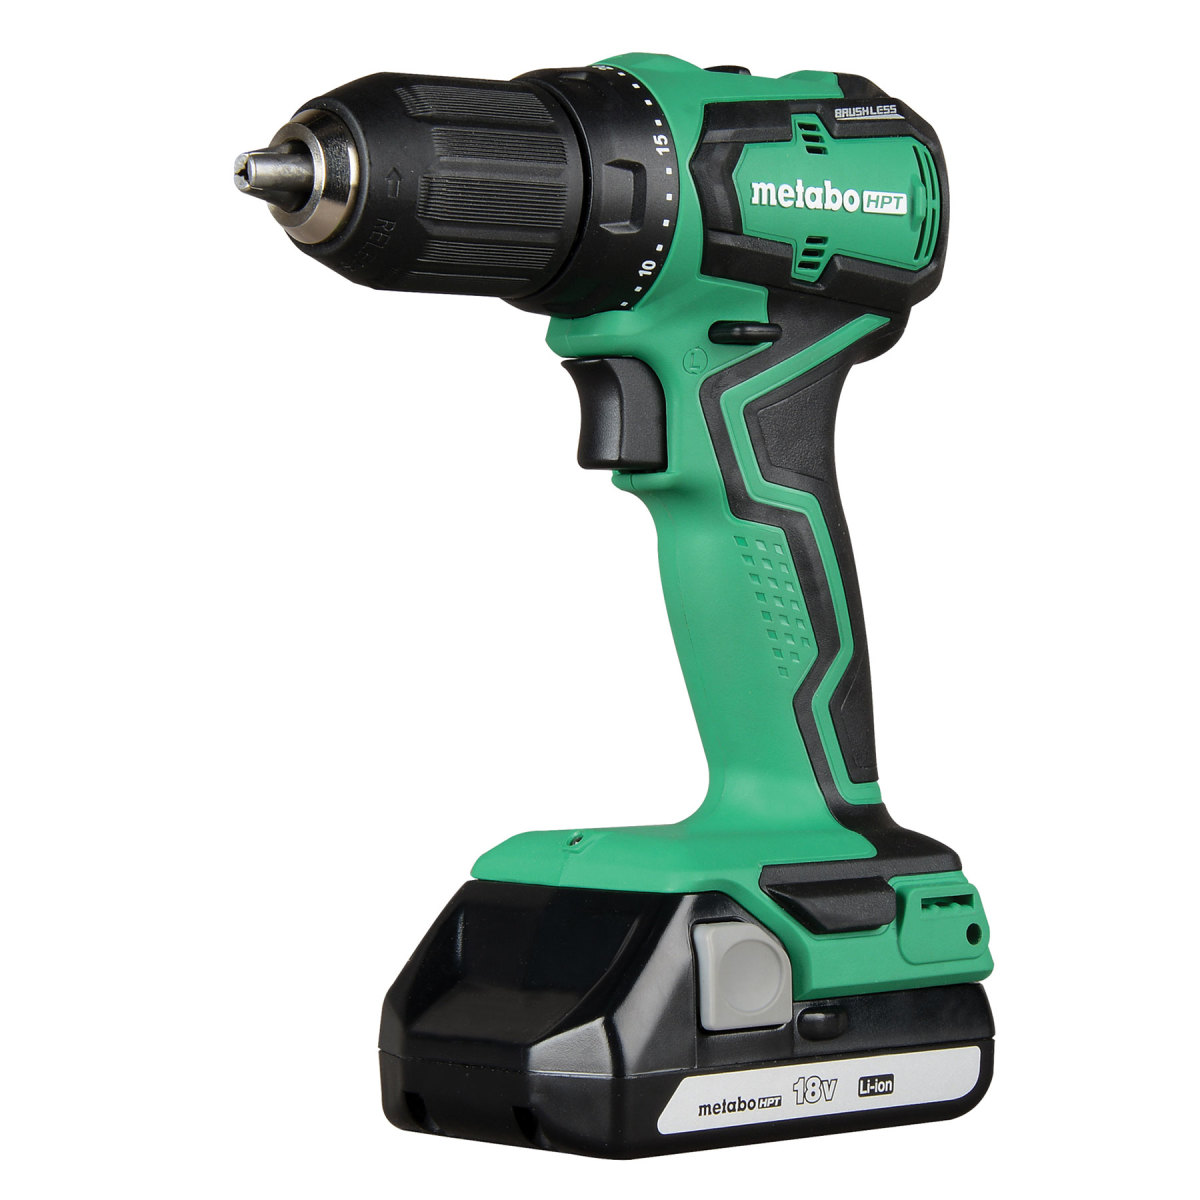 The Sub-Compact drill is made for tight spaces.